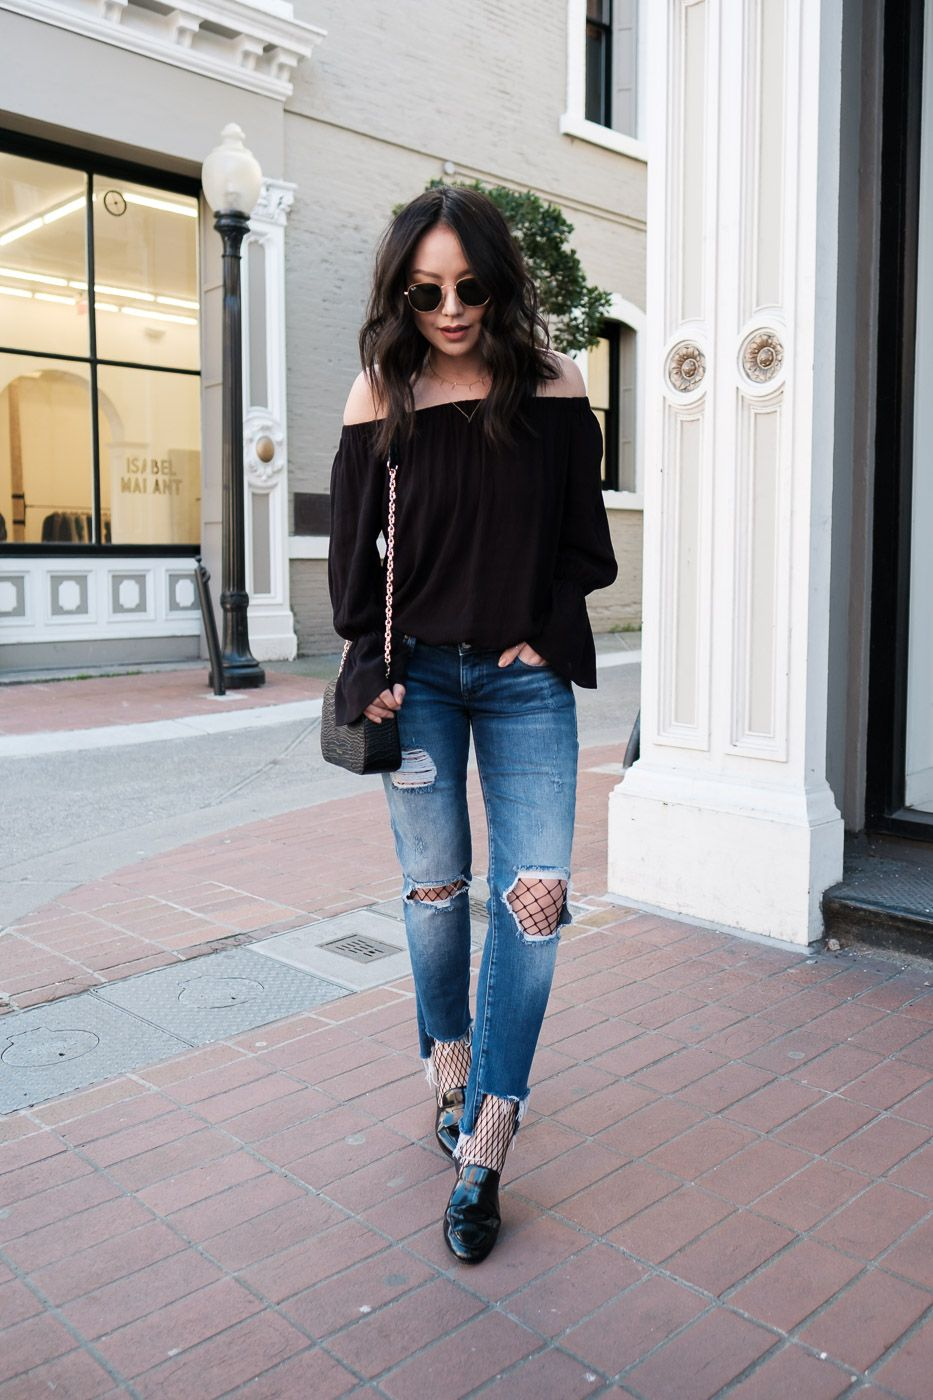 c3fd23a79d How to wear fishnet tights: Pair with a solid off-the-shoulder top and  minimal jewelry.